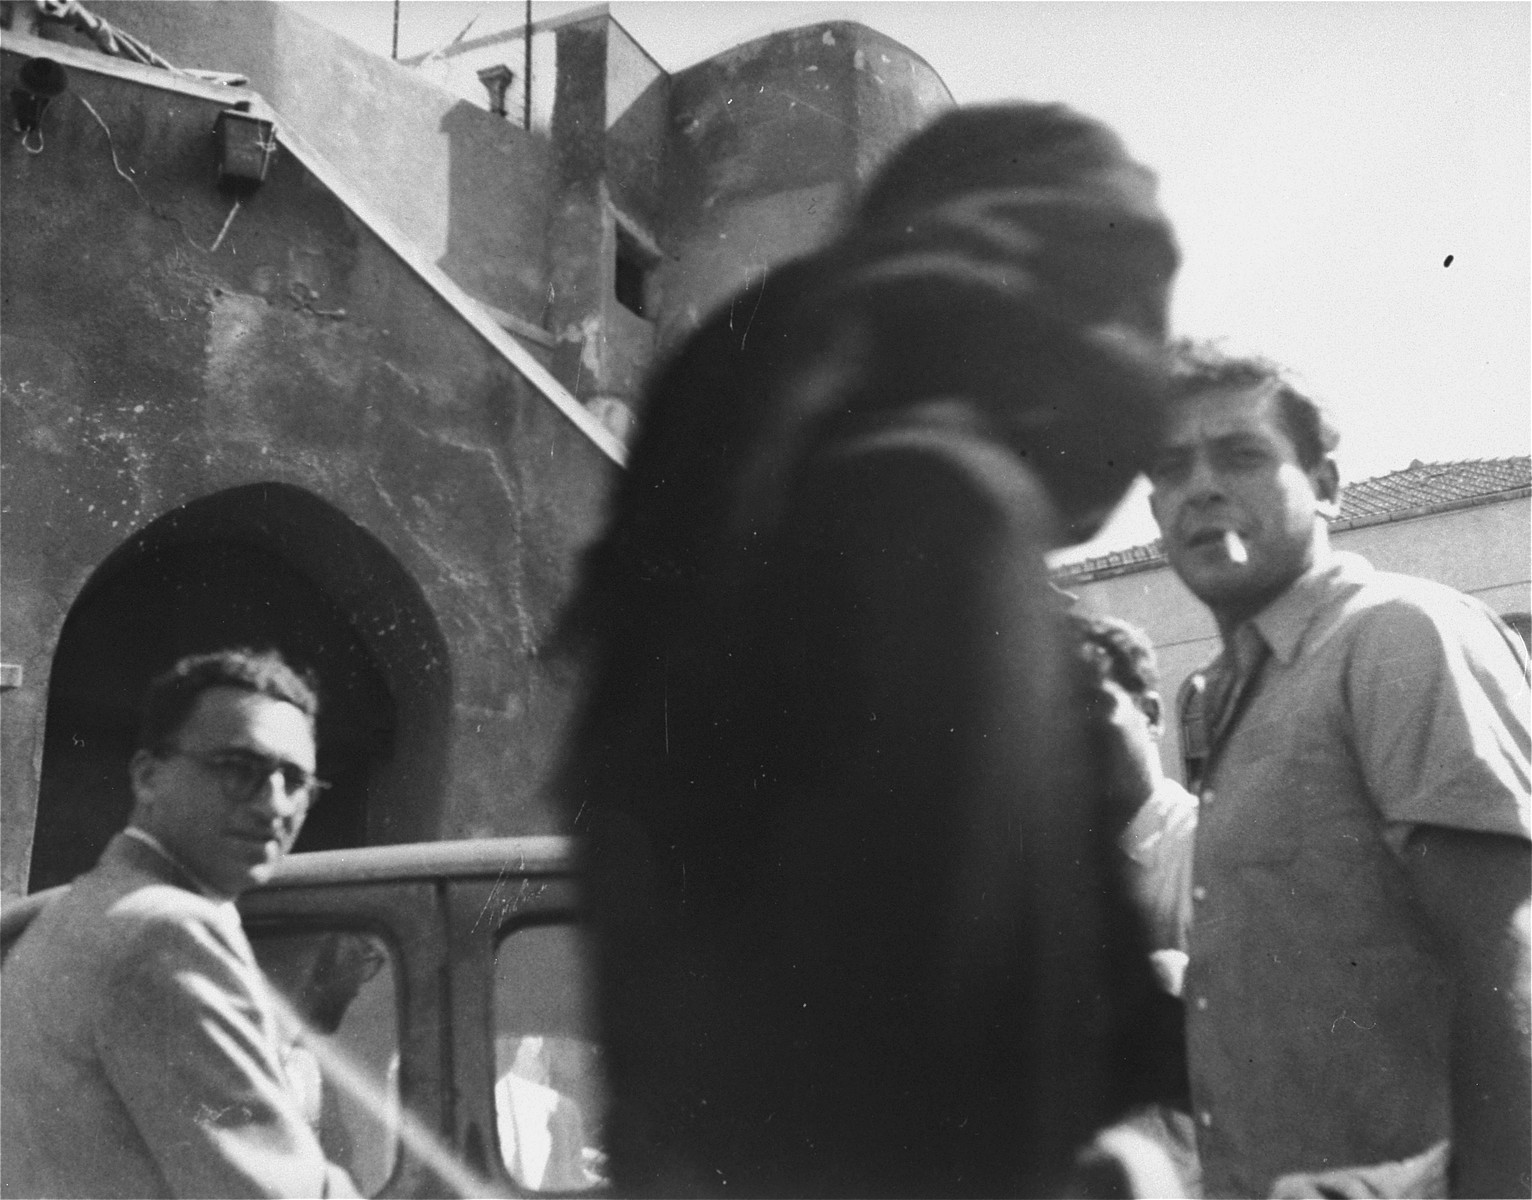 Jews at the entrance to a first aid compound in Palestine.